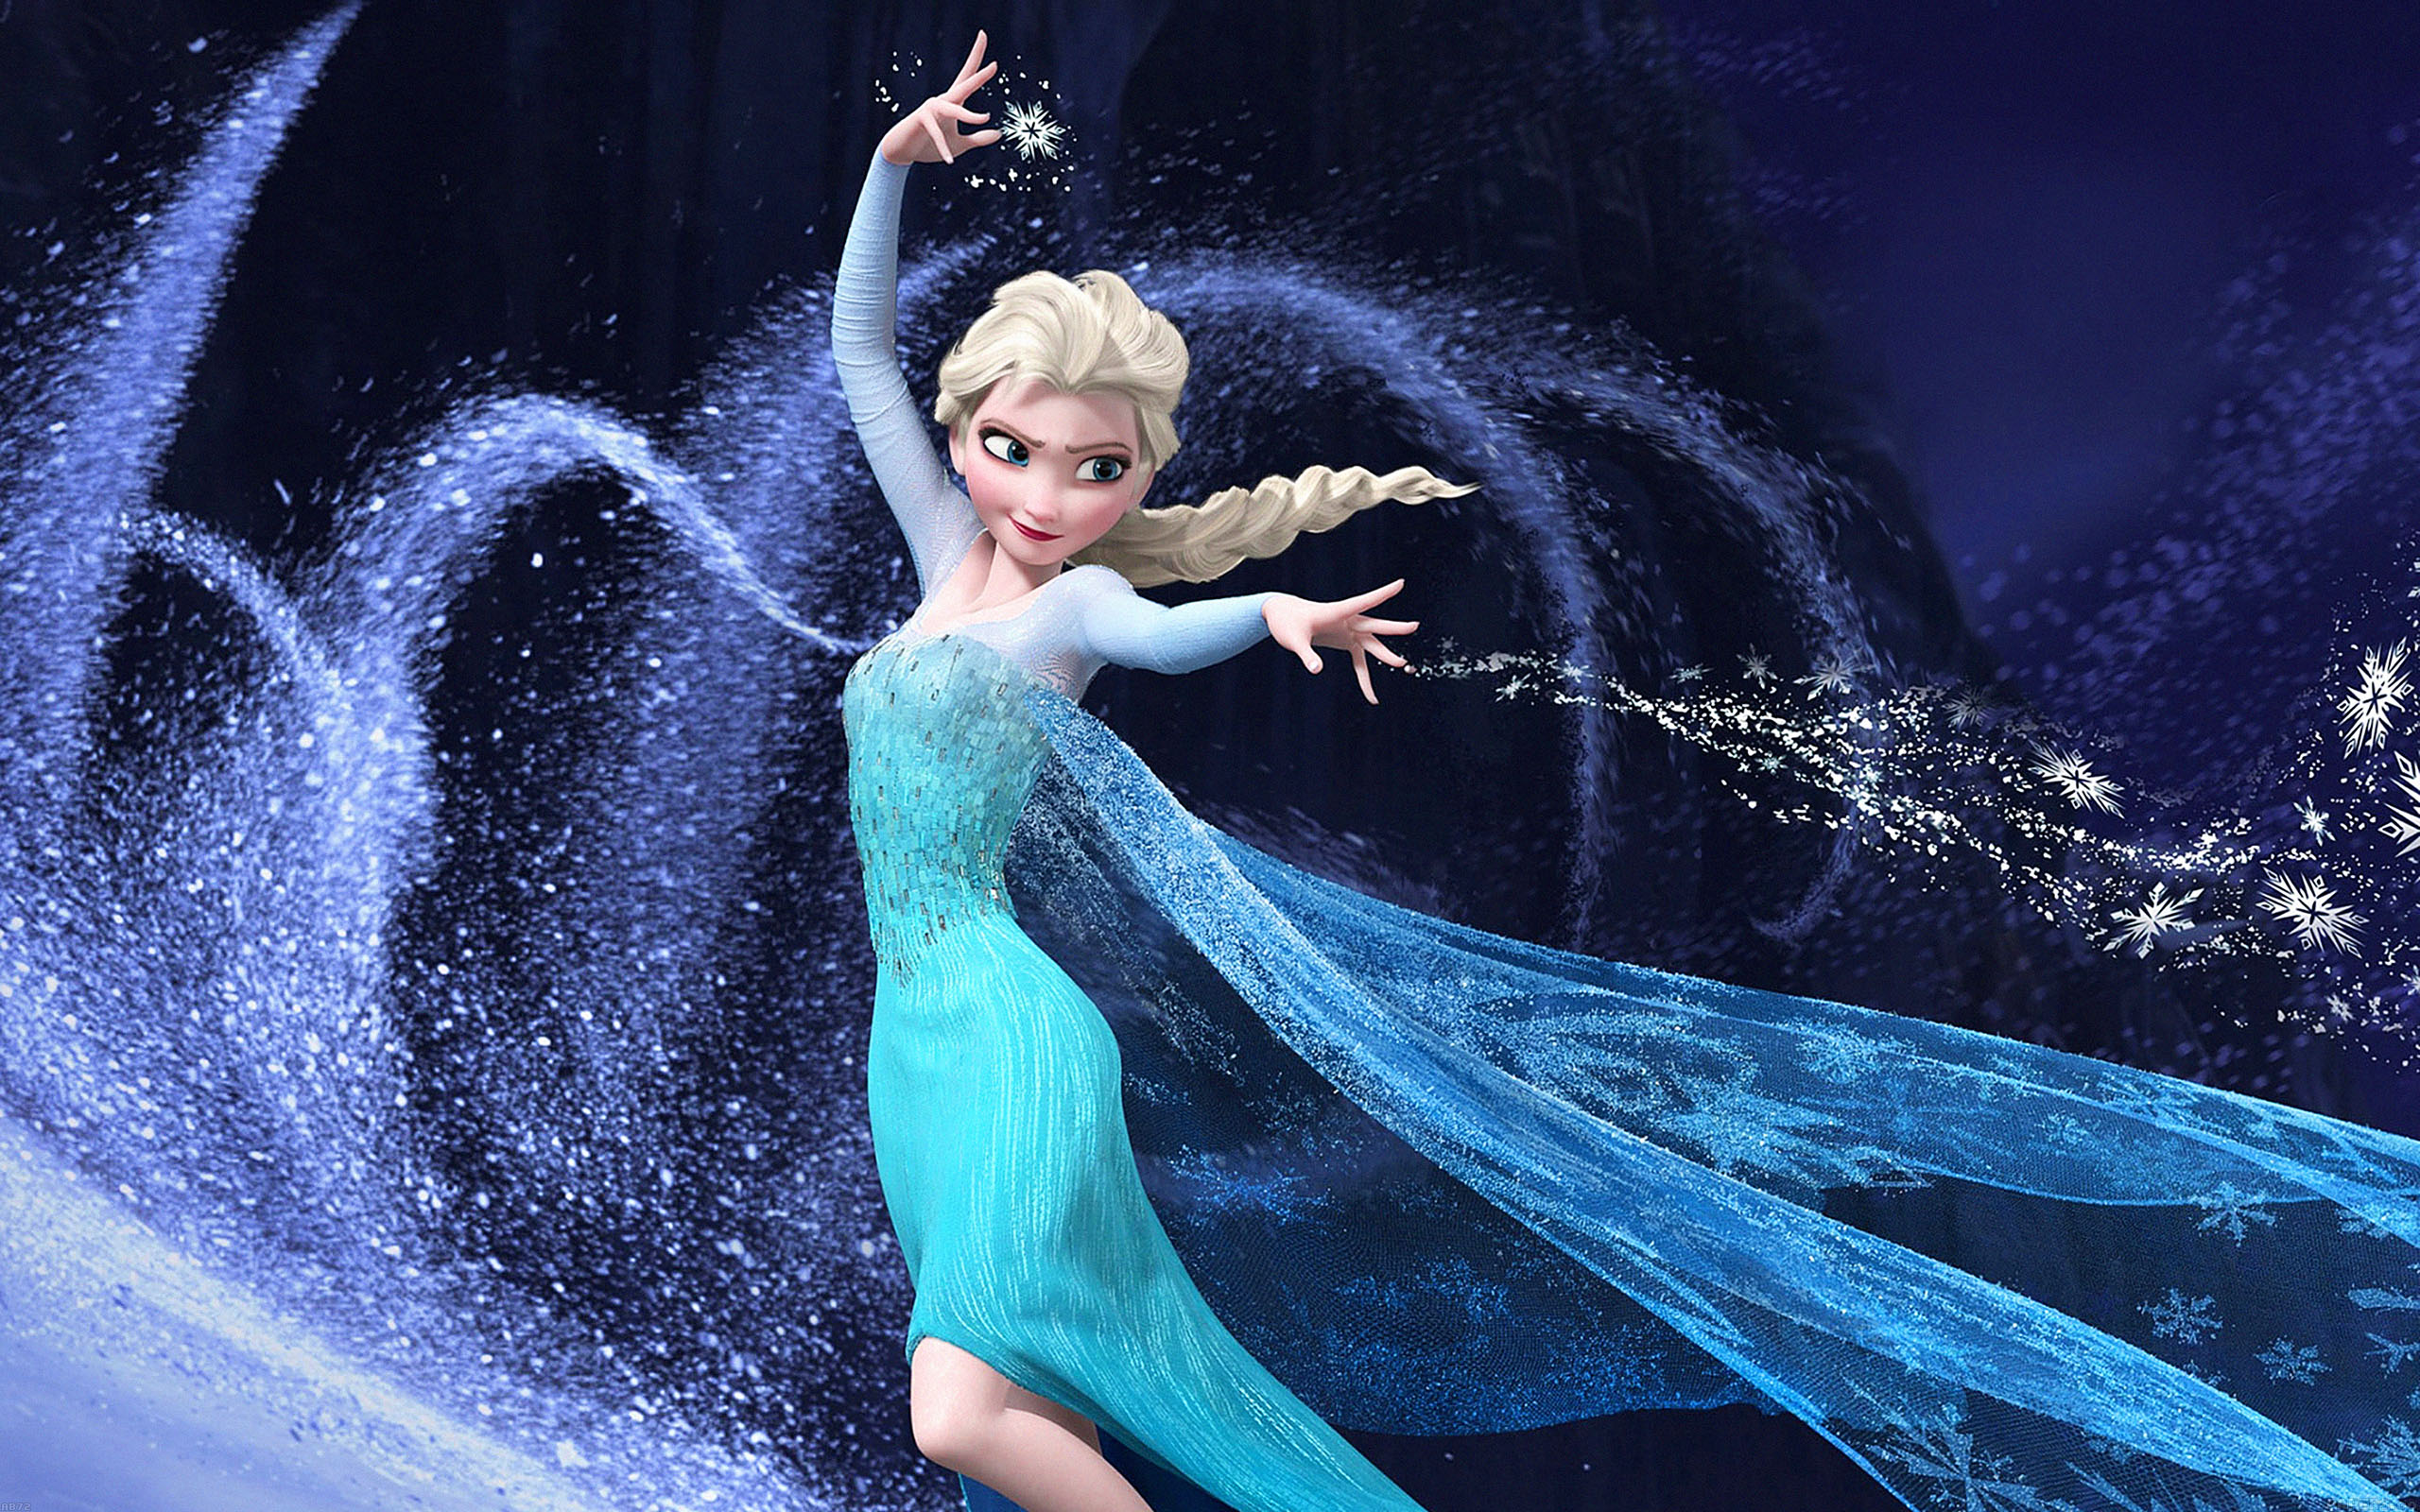 Ab72-wallpaper-frozen-elsa-disney